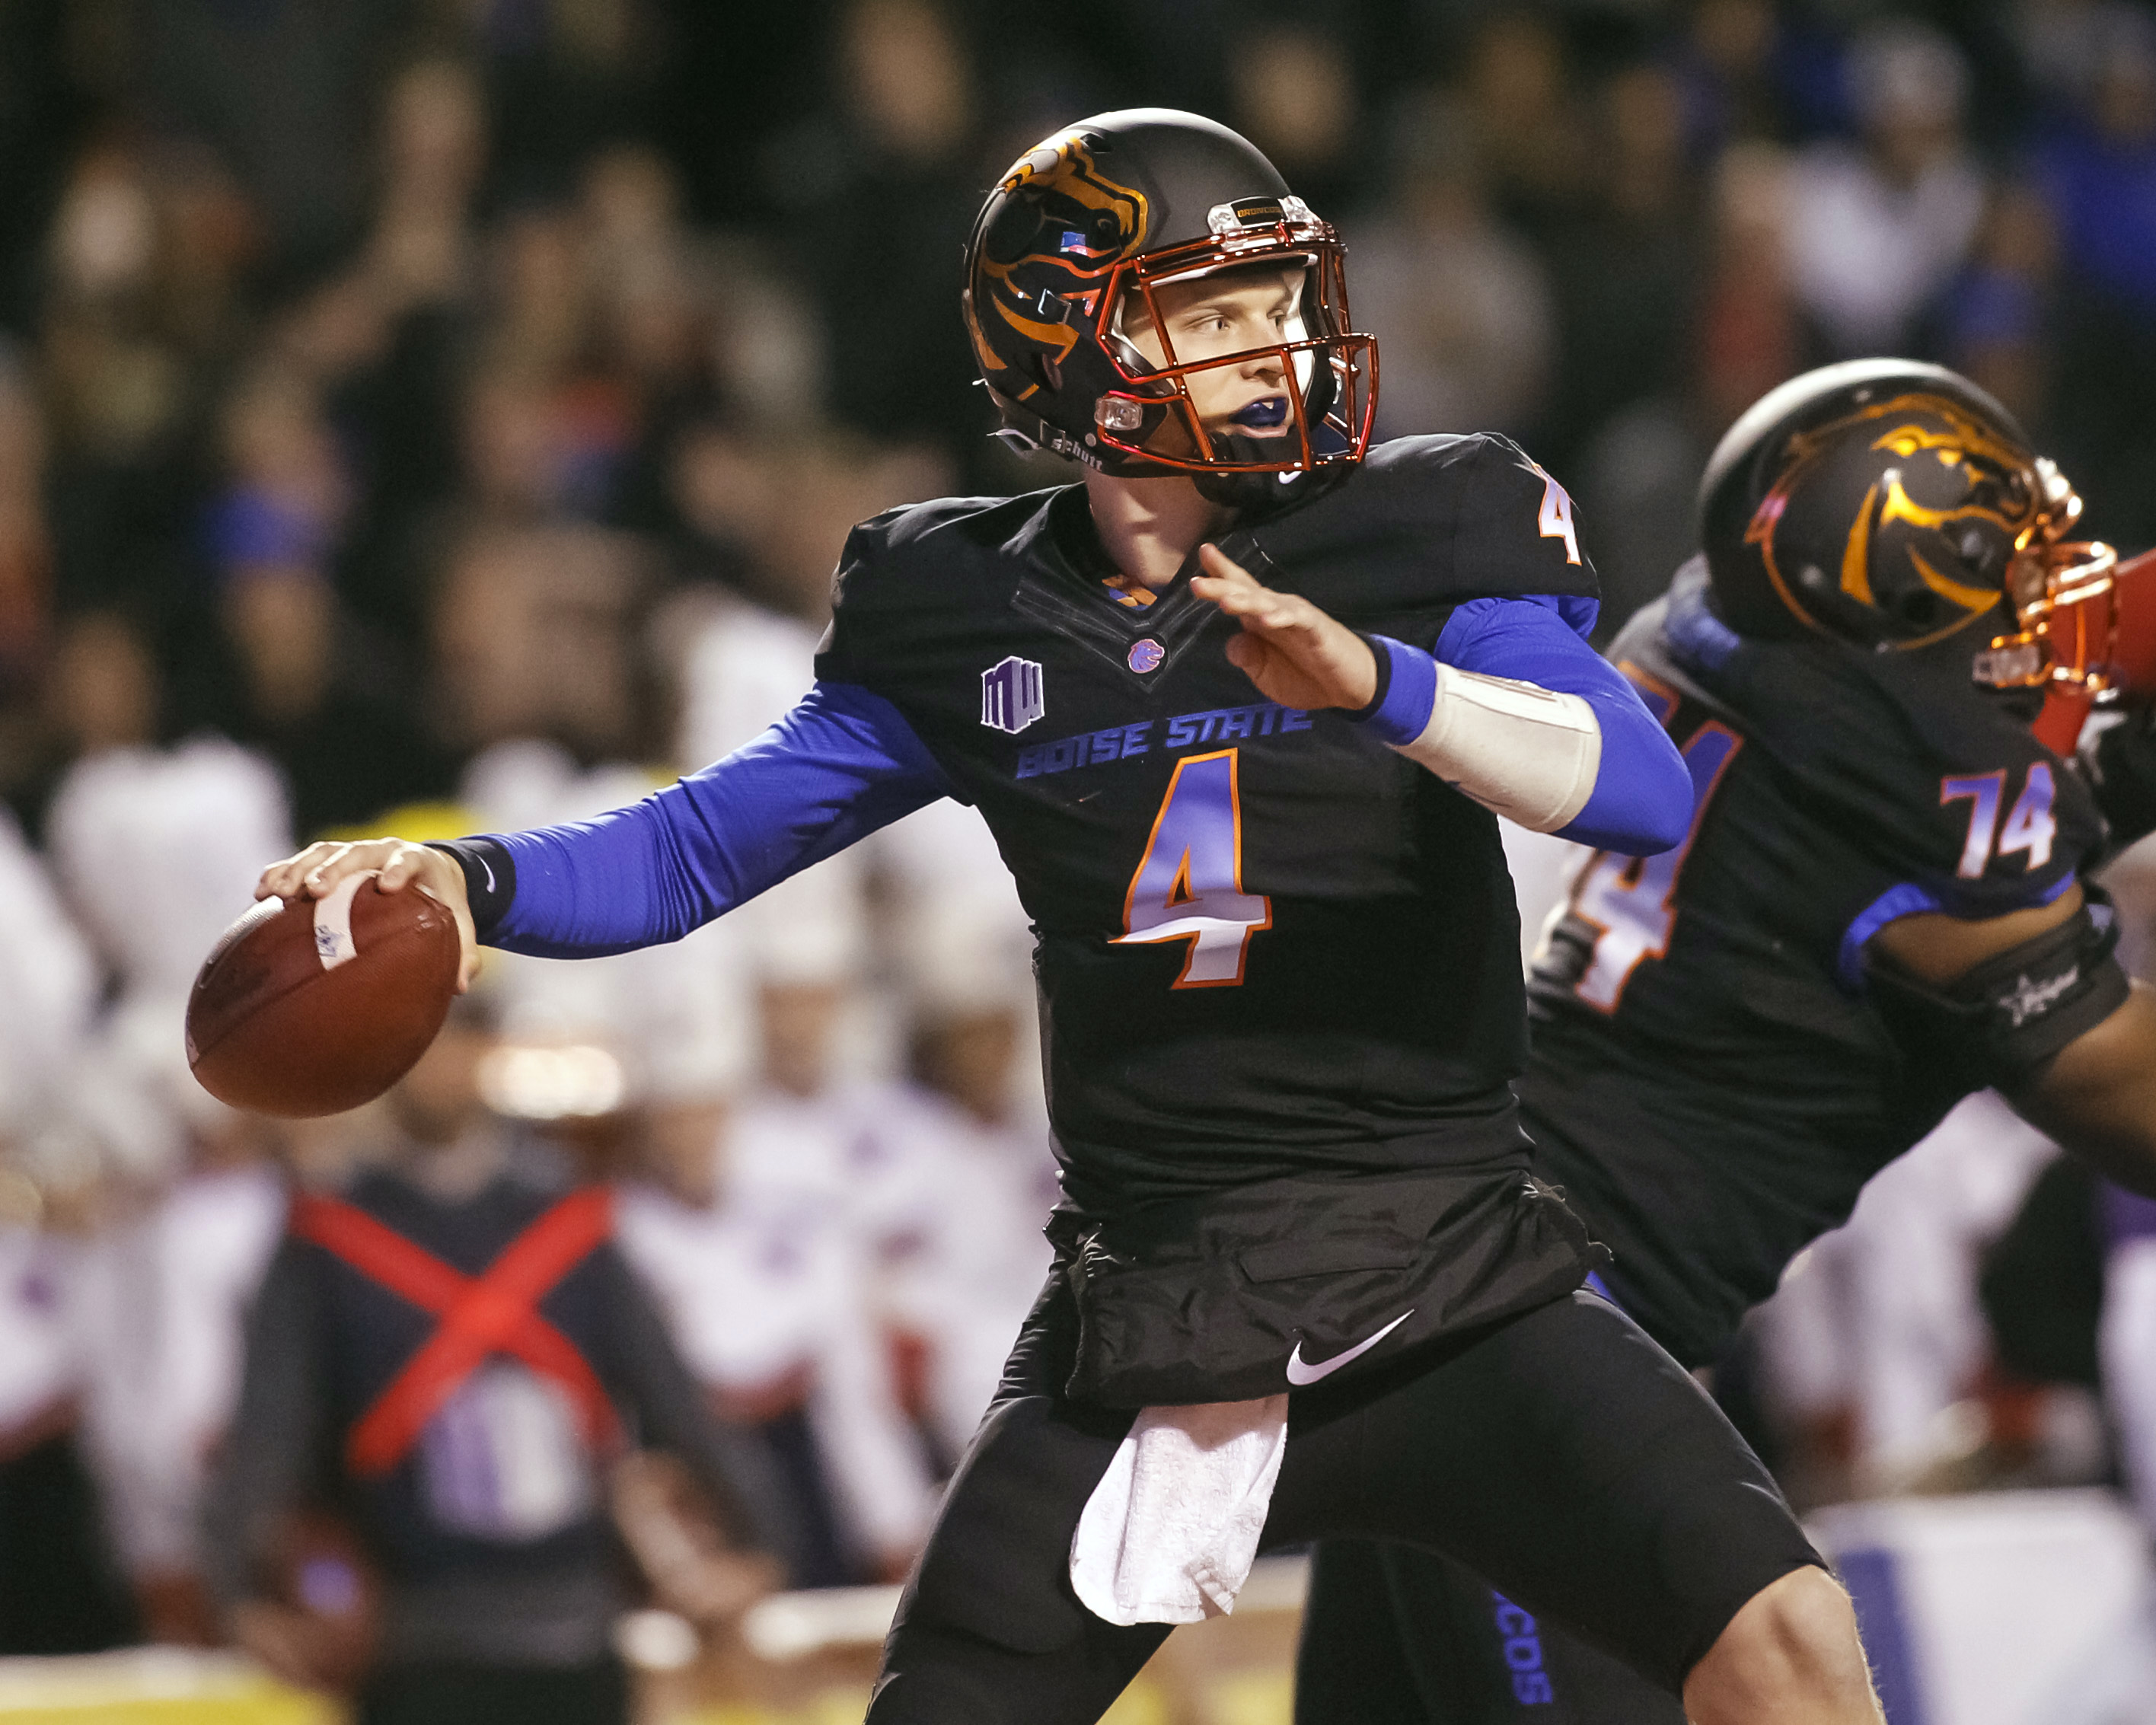 Boise State quarterback Brett Rypien (4) readies to throw a pass during the first half of an NCAA college football game against New Mexico in Boise, Idaho, on Saturday, Nov. 14, 2015. (AP Photo/Otto Kitsinger)